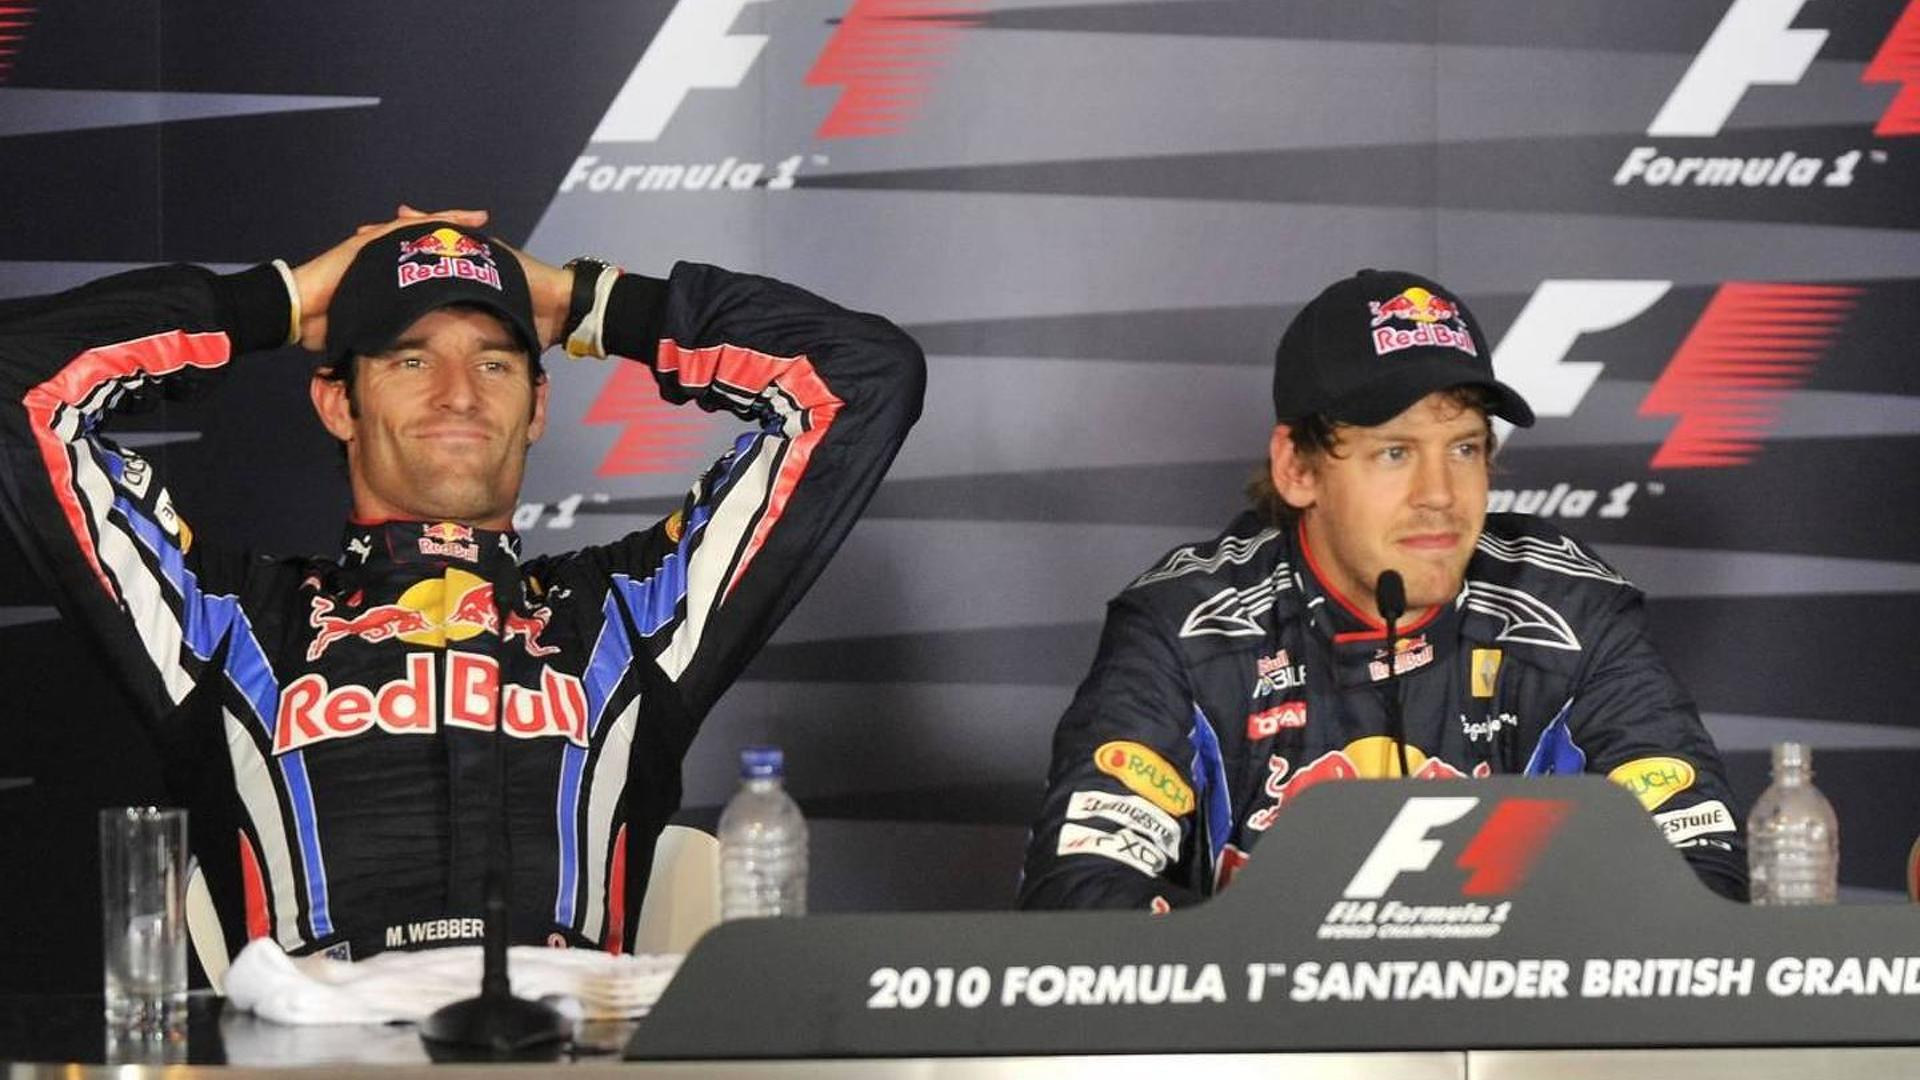 Webber furious after losing new wing to Vettel - RESULTS